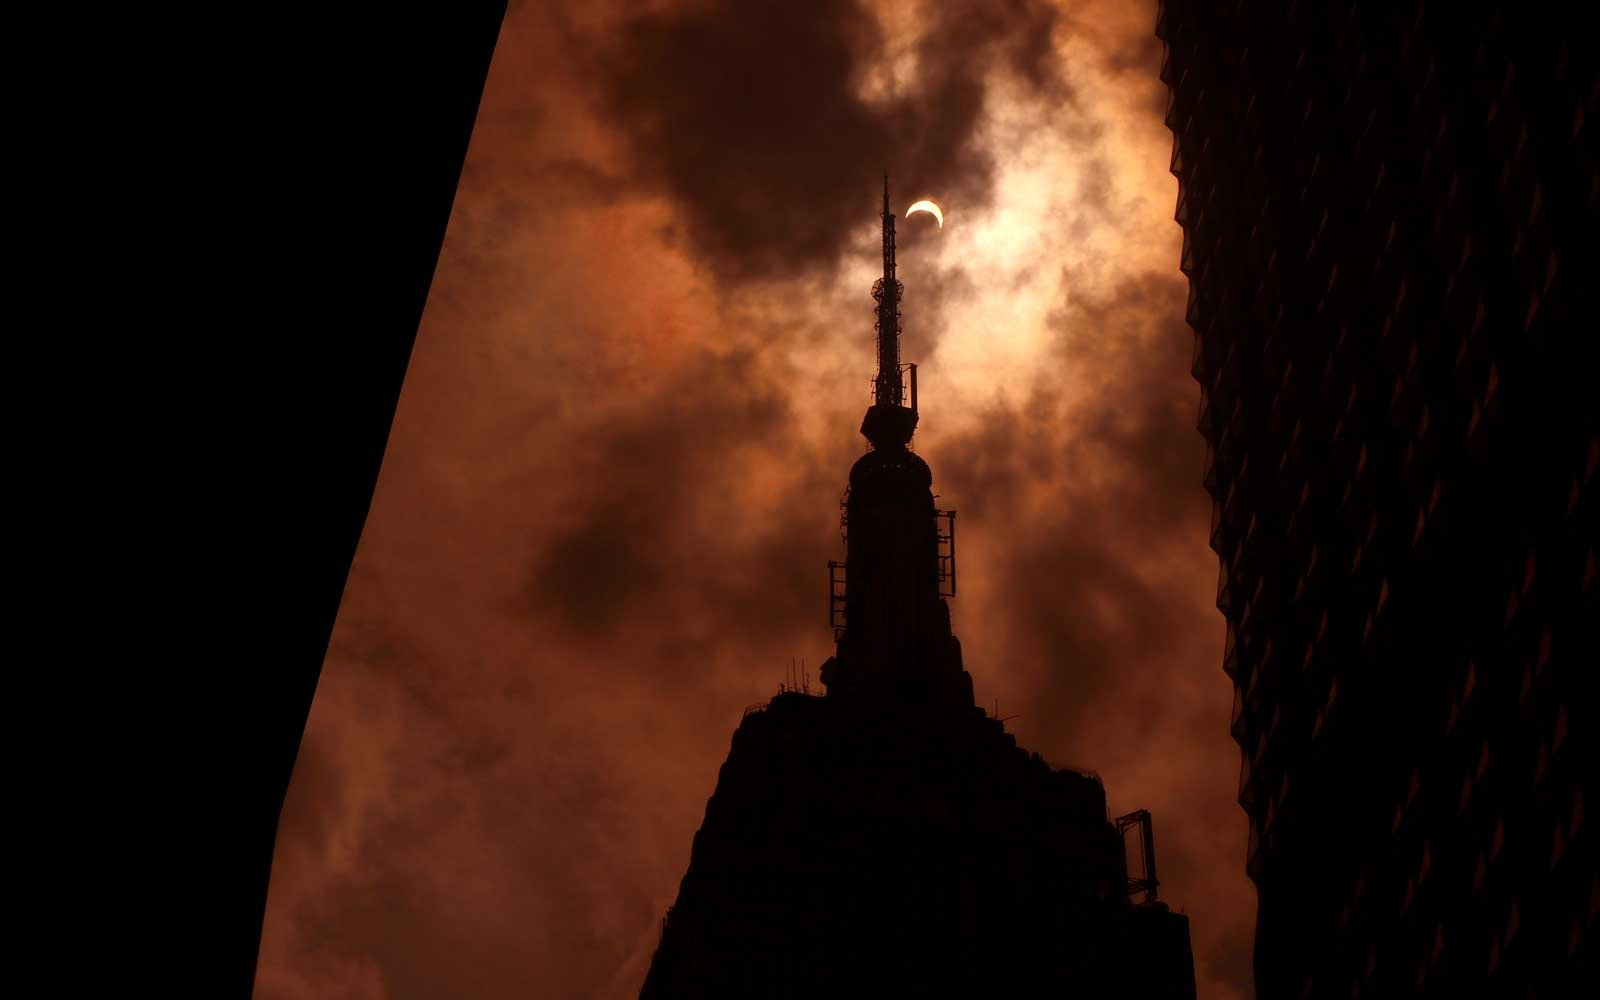 The sun is eclipsed by the moon over top of the Empire State Building in New York City on August 21, 2017.